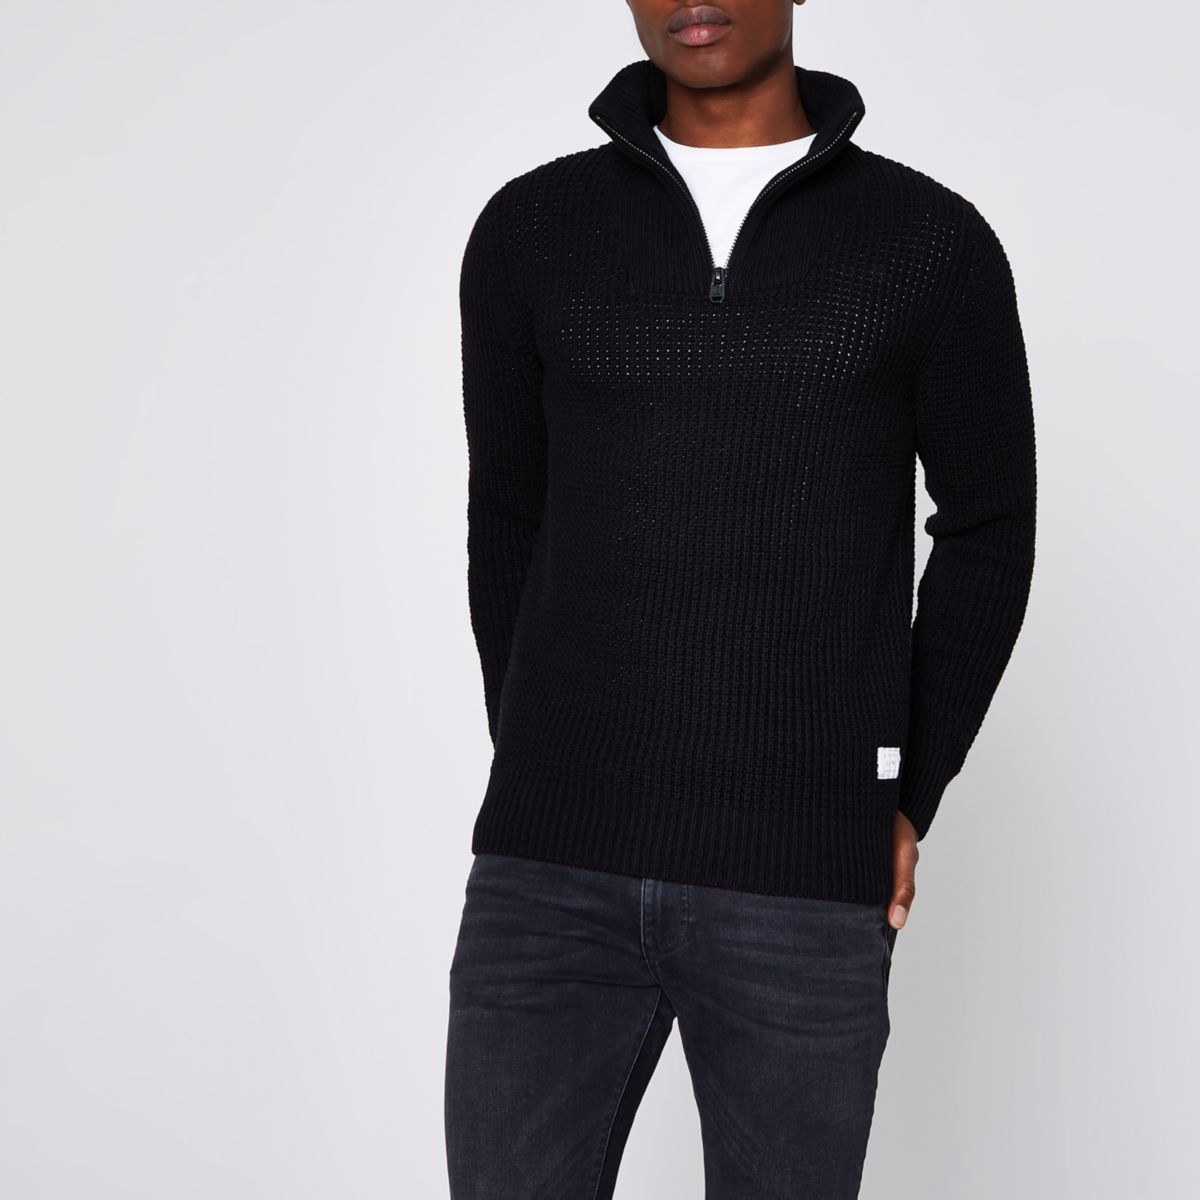 Jack & Jones Core black knit high neck sweater